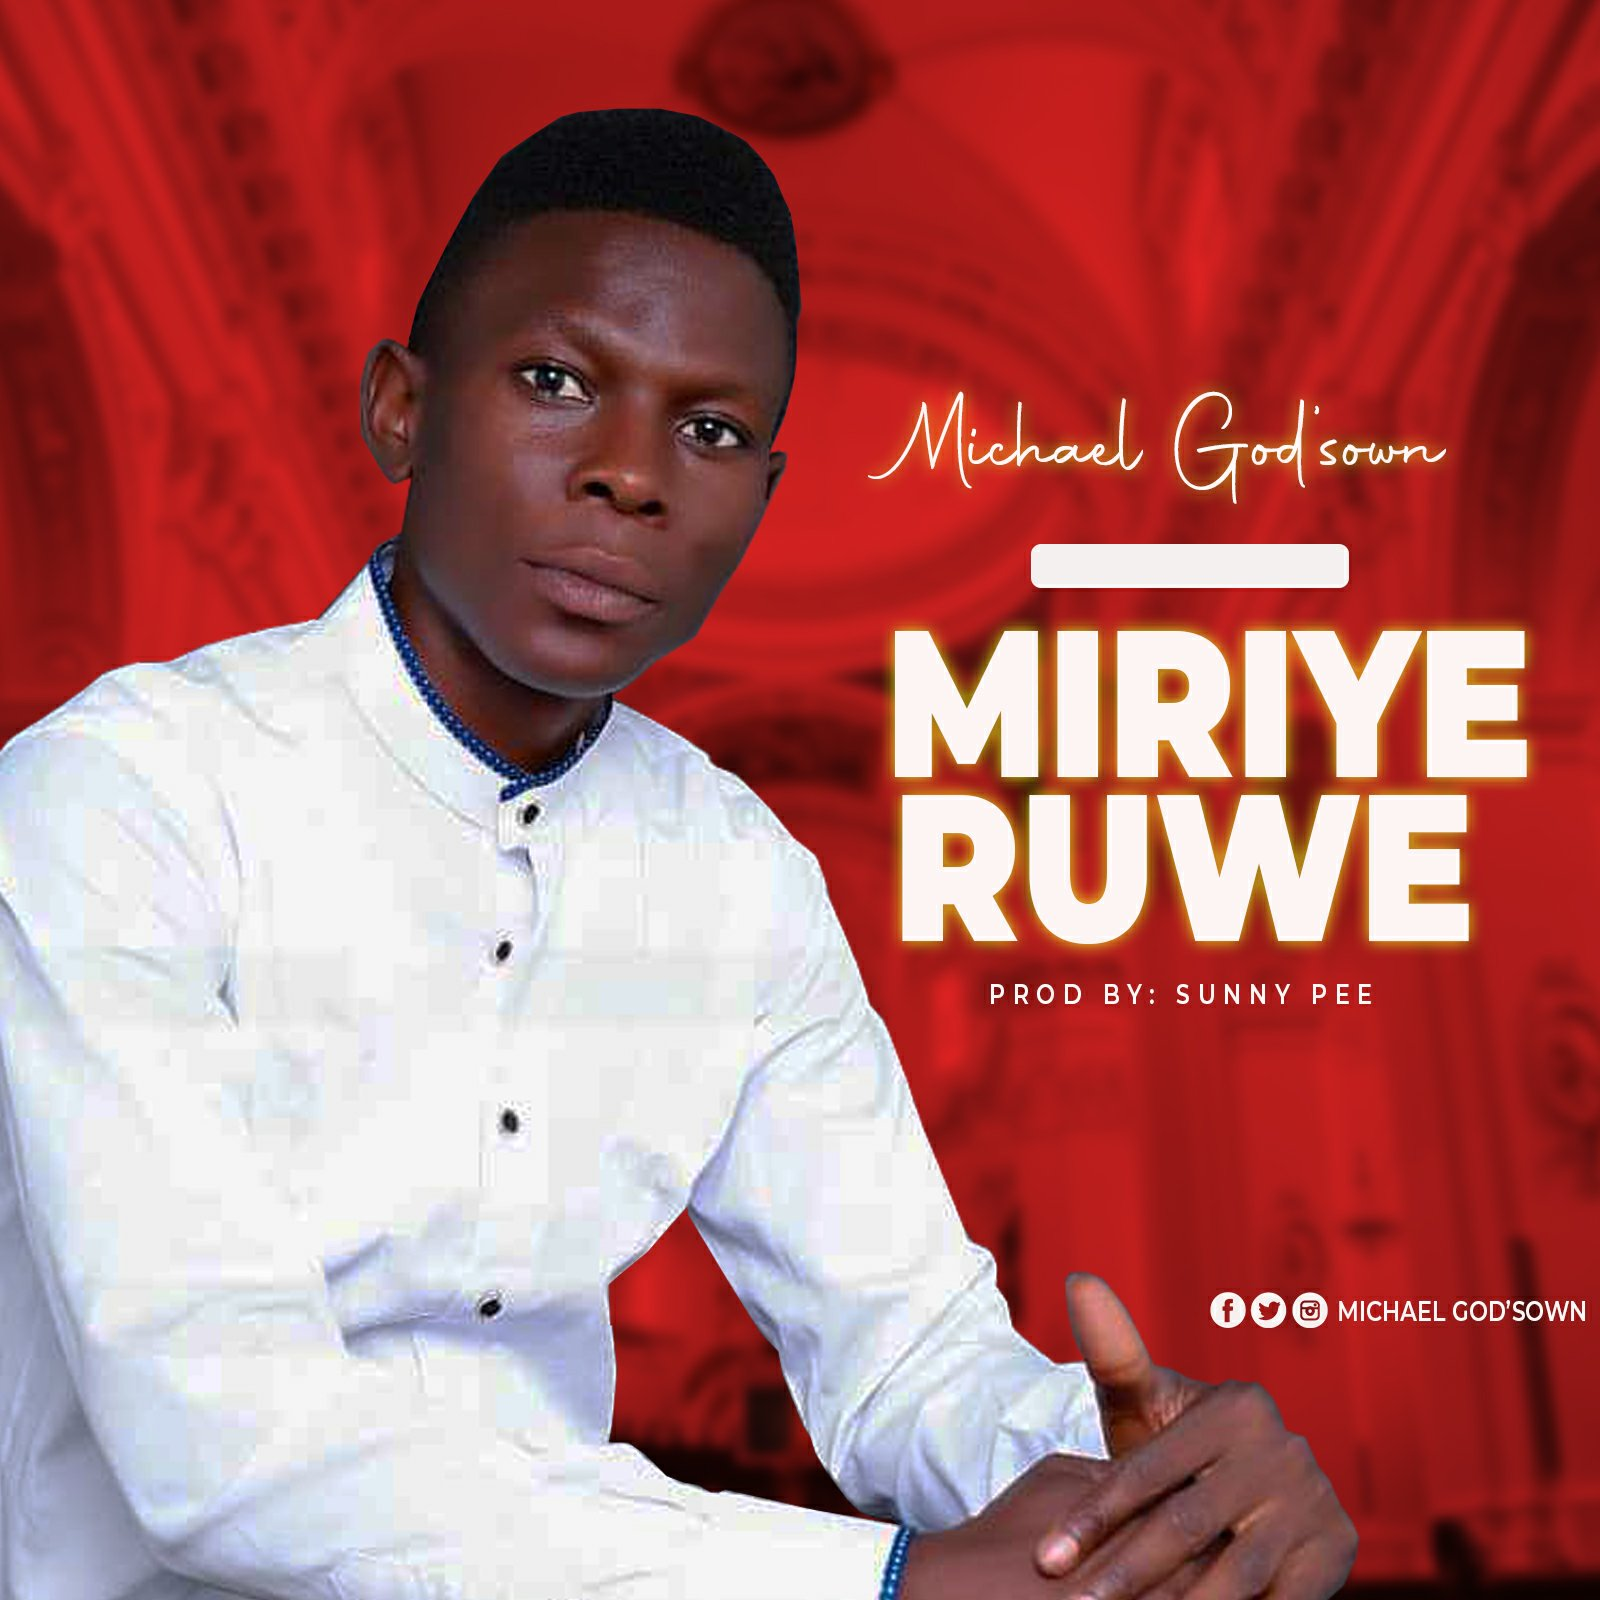 DOWNLOAD Music: Michael God'sown – Miriyeruwe (I've come to give thanks)